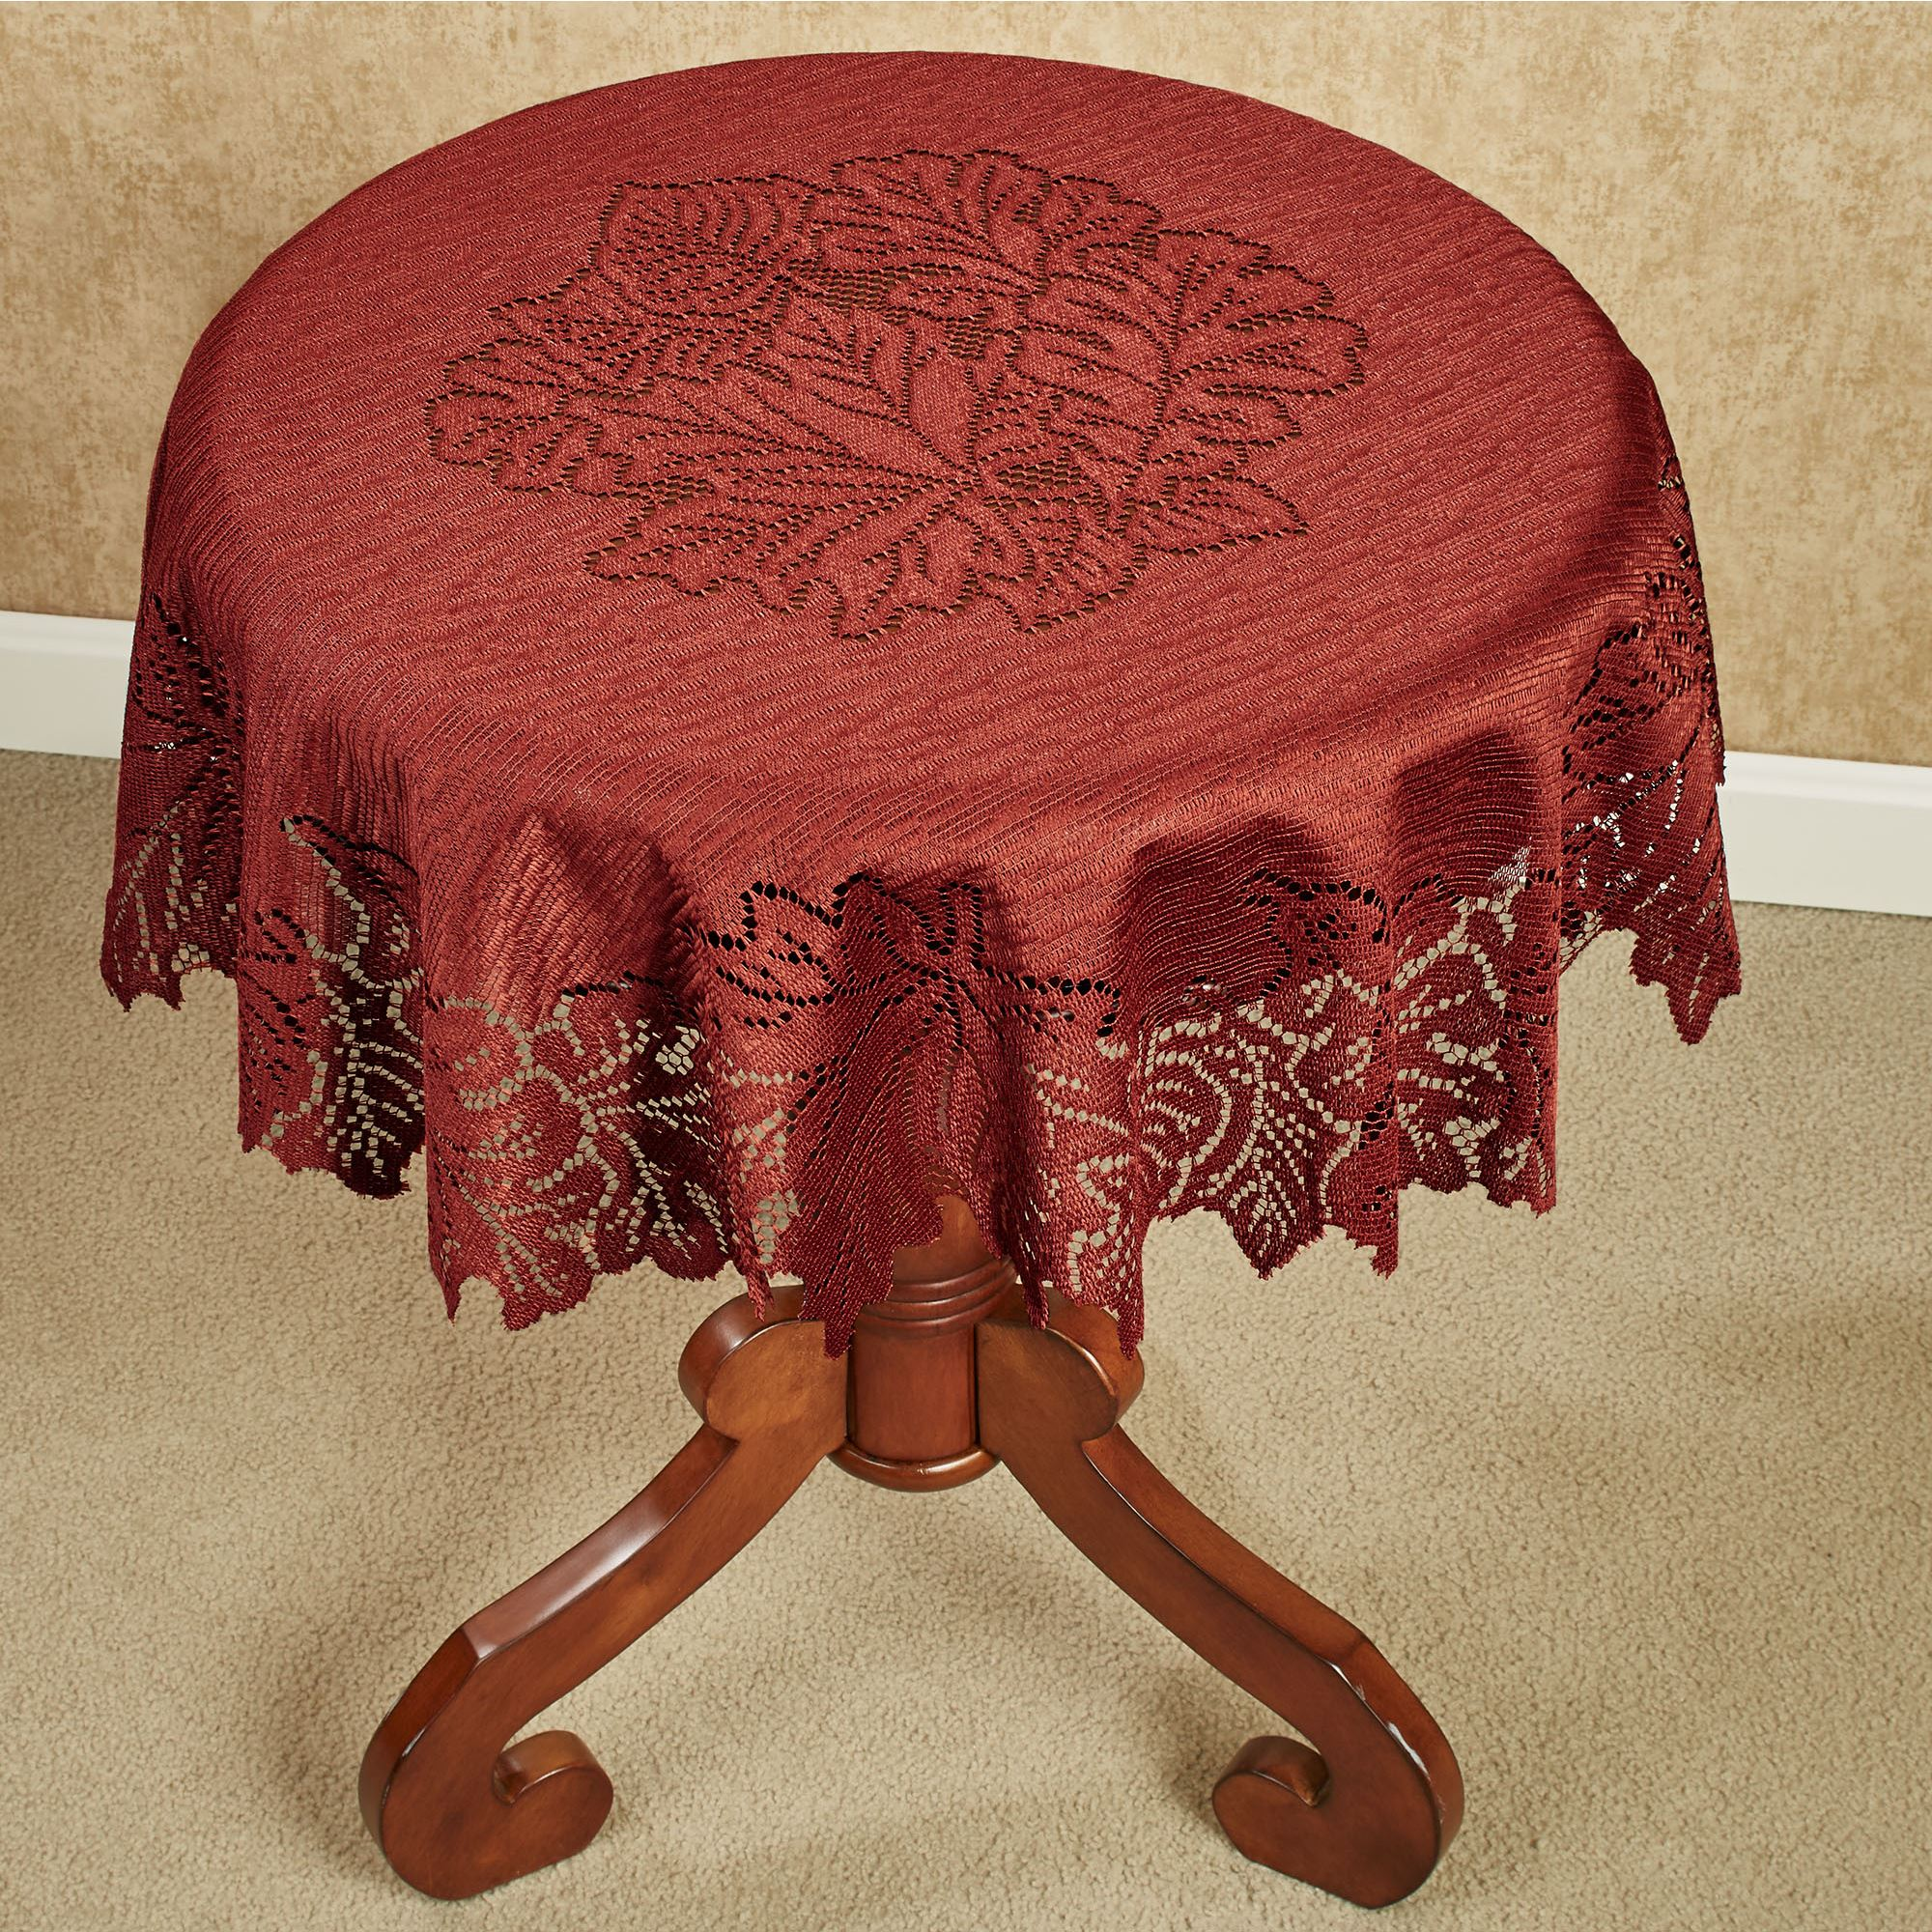 Captivating Falling Leaves Round Lace Table Topper 36 Diameter